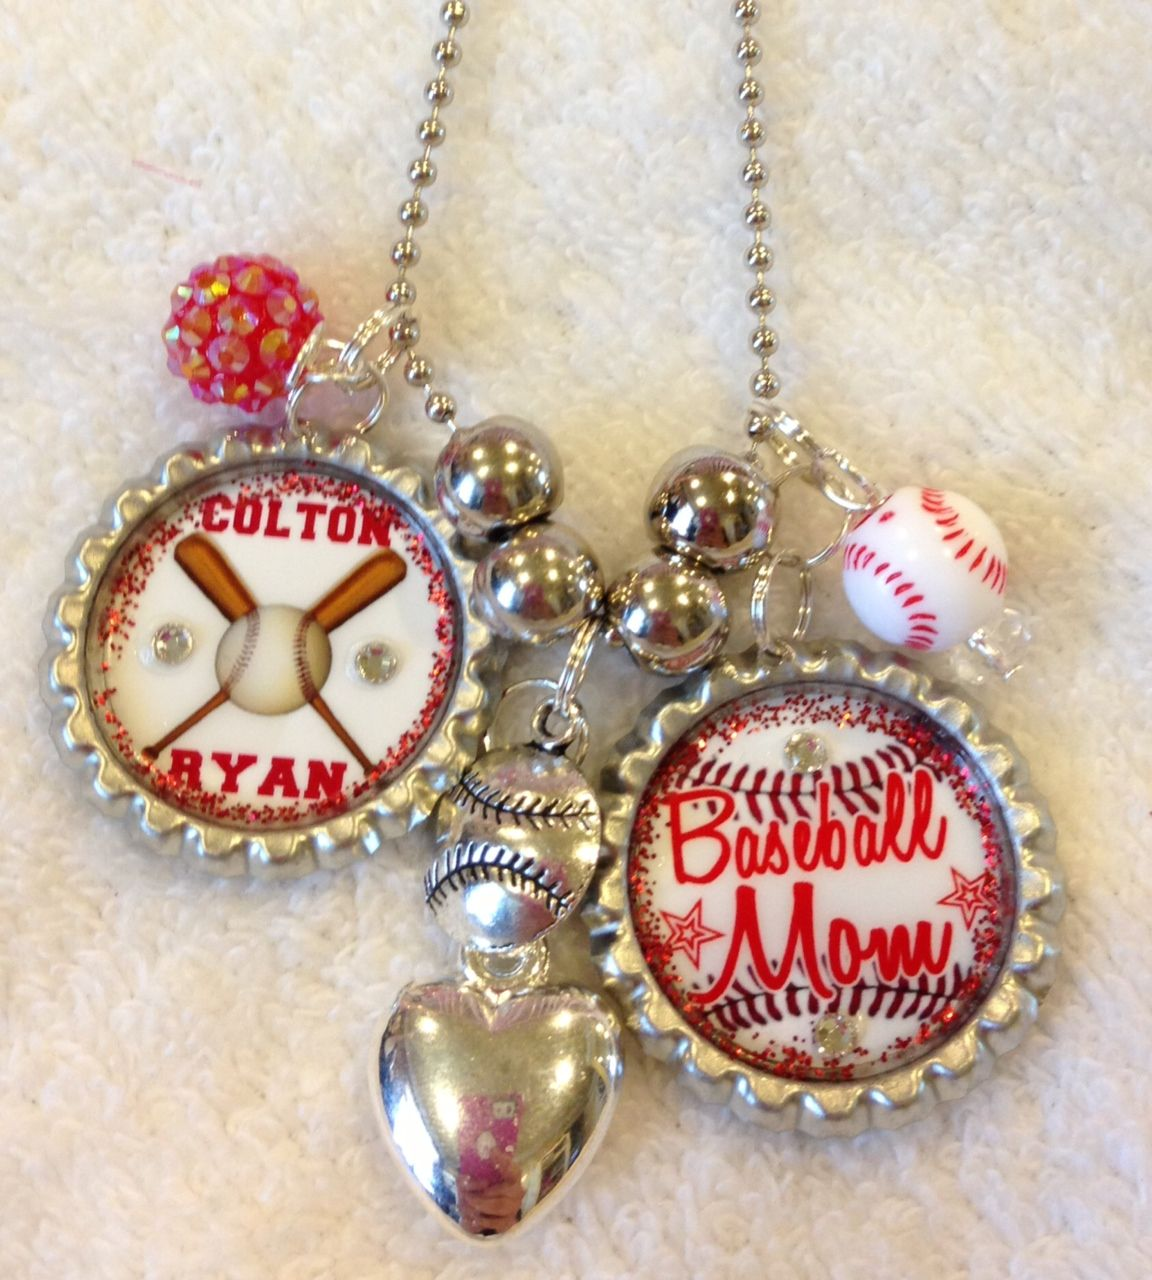 Bottle cap necklaces for any occasion, sports, graduation, schools etc. I custom make these so pretty much anything can be done :) Contact me for more info.  Baseball, end of year gift, party favors etc. Contact me at Facebook.com/bowlicious4me